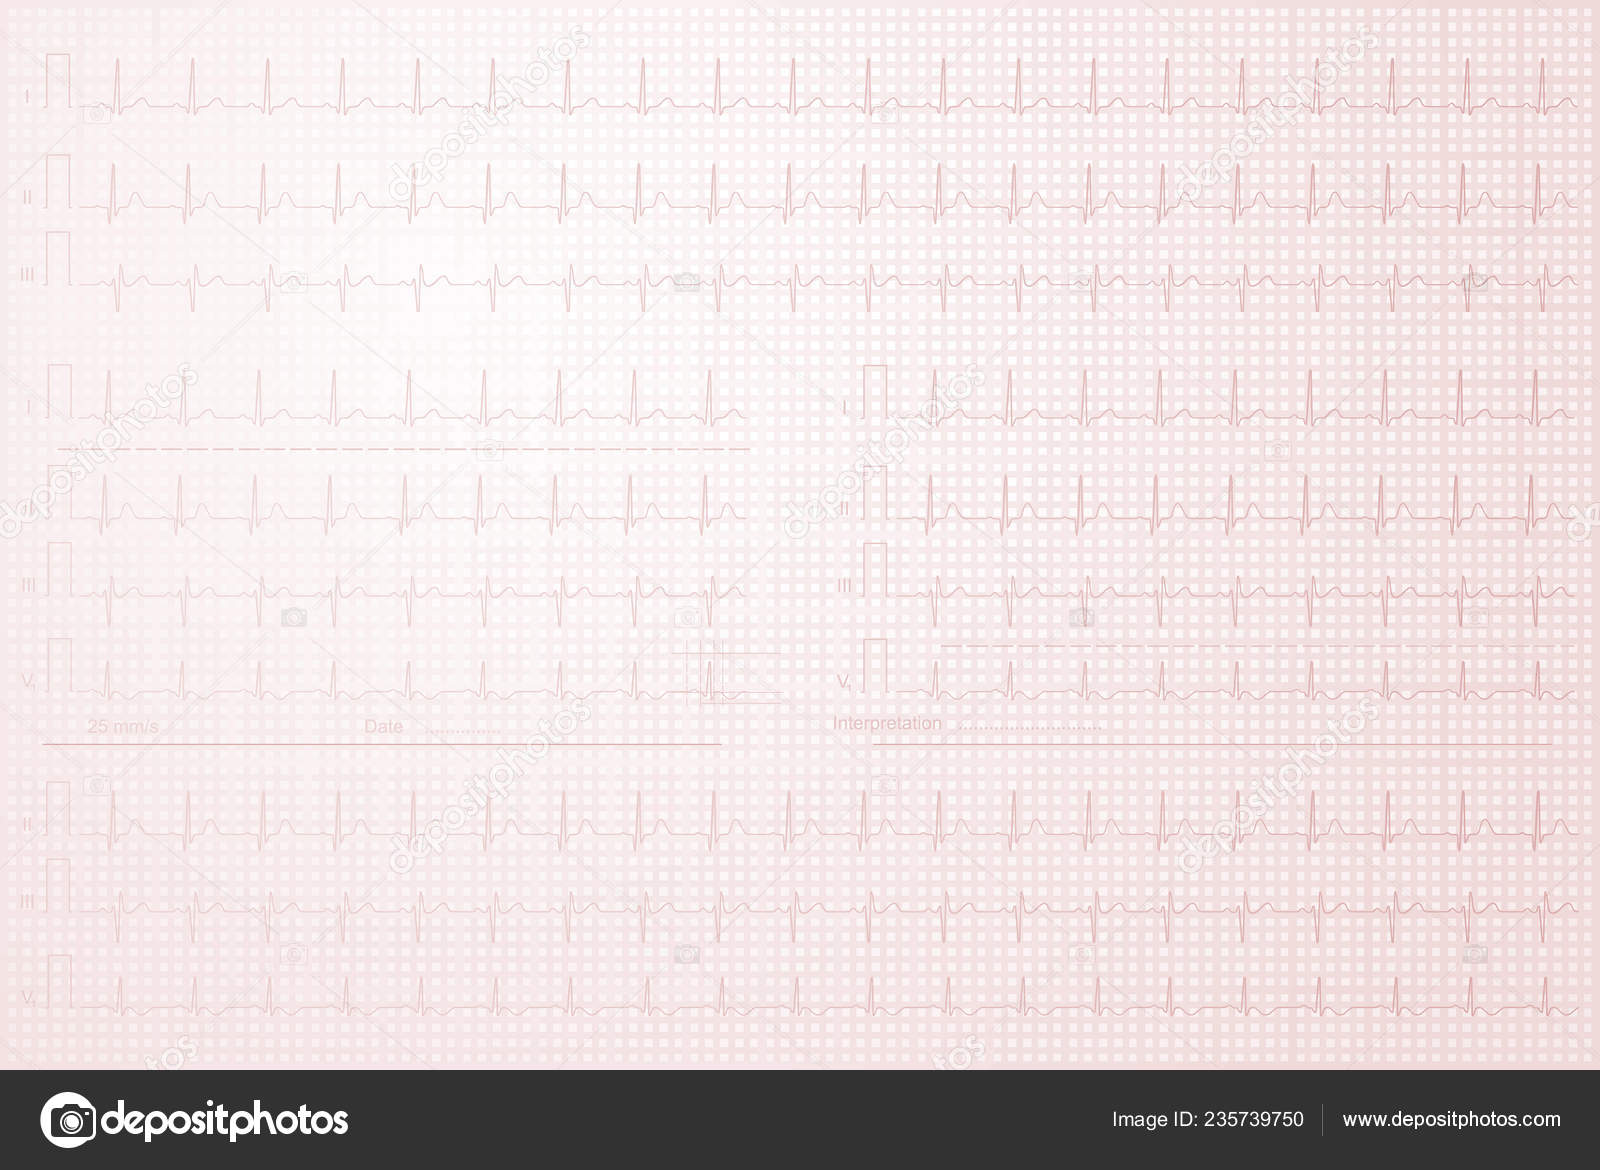 Cardiogram Lined Paper Background Stock Photo Sudok1